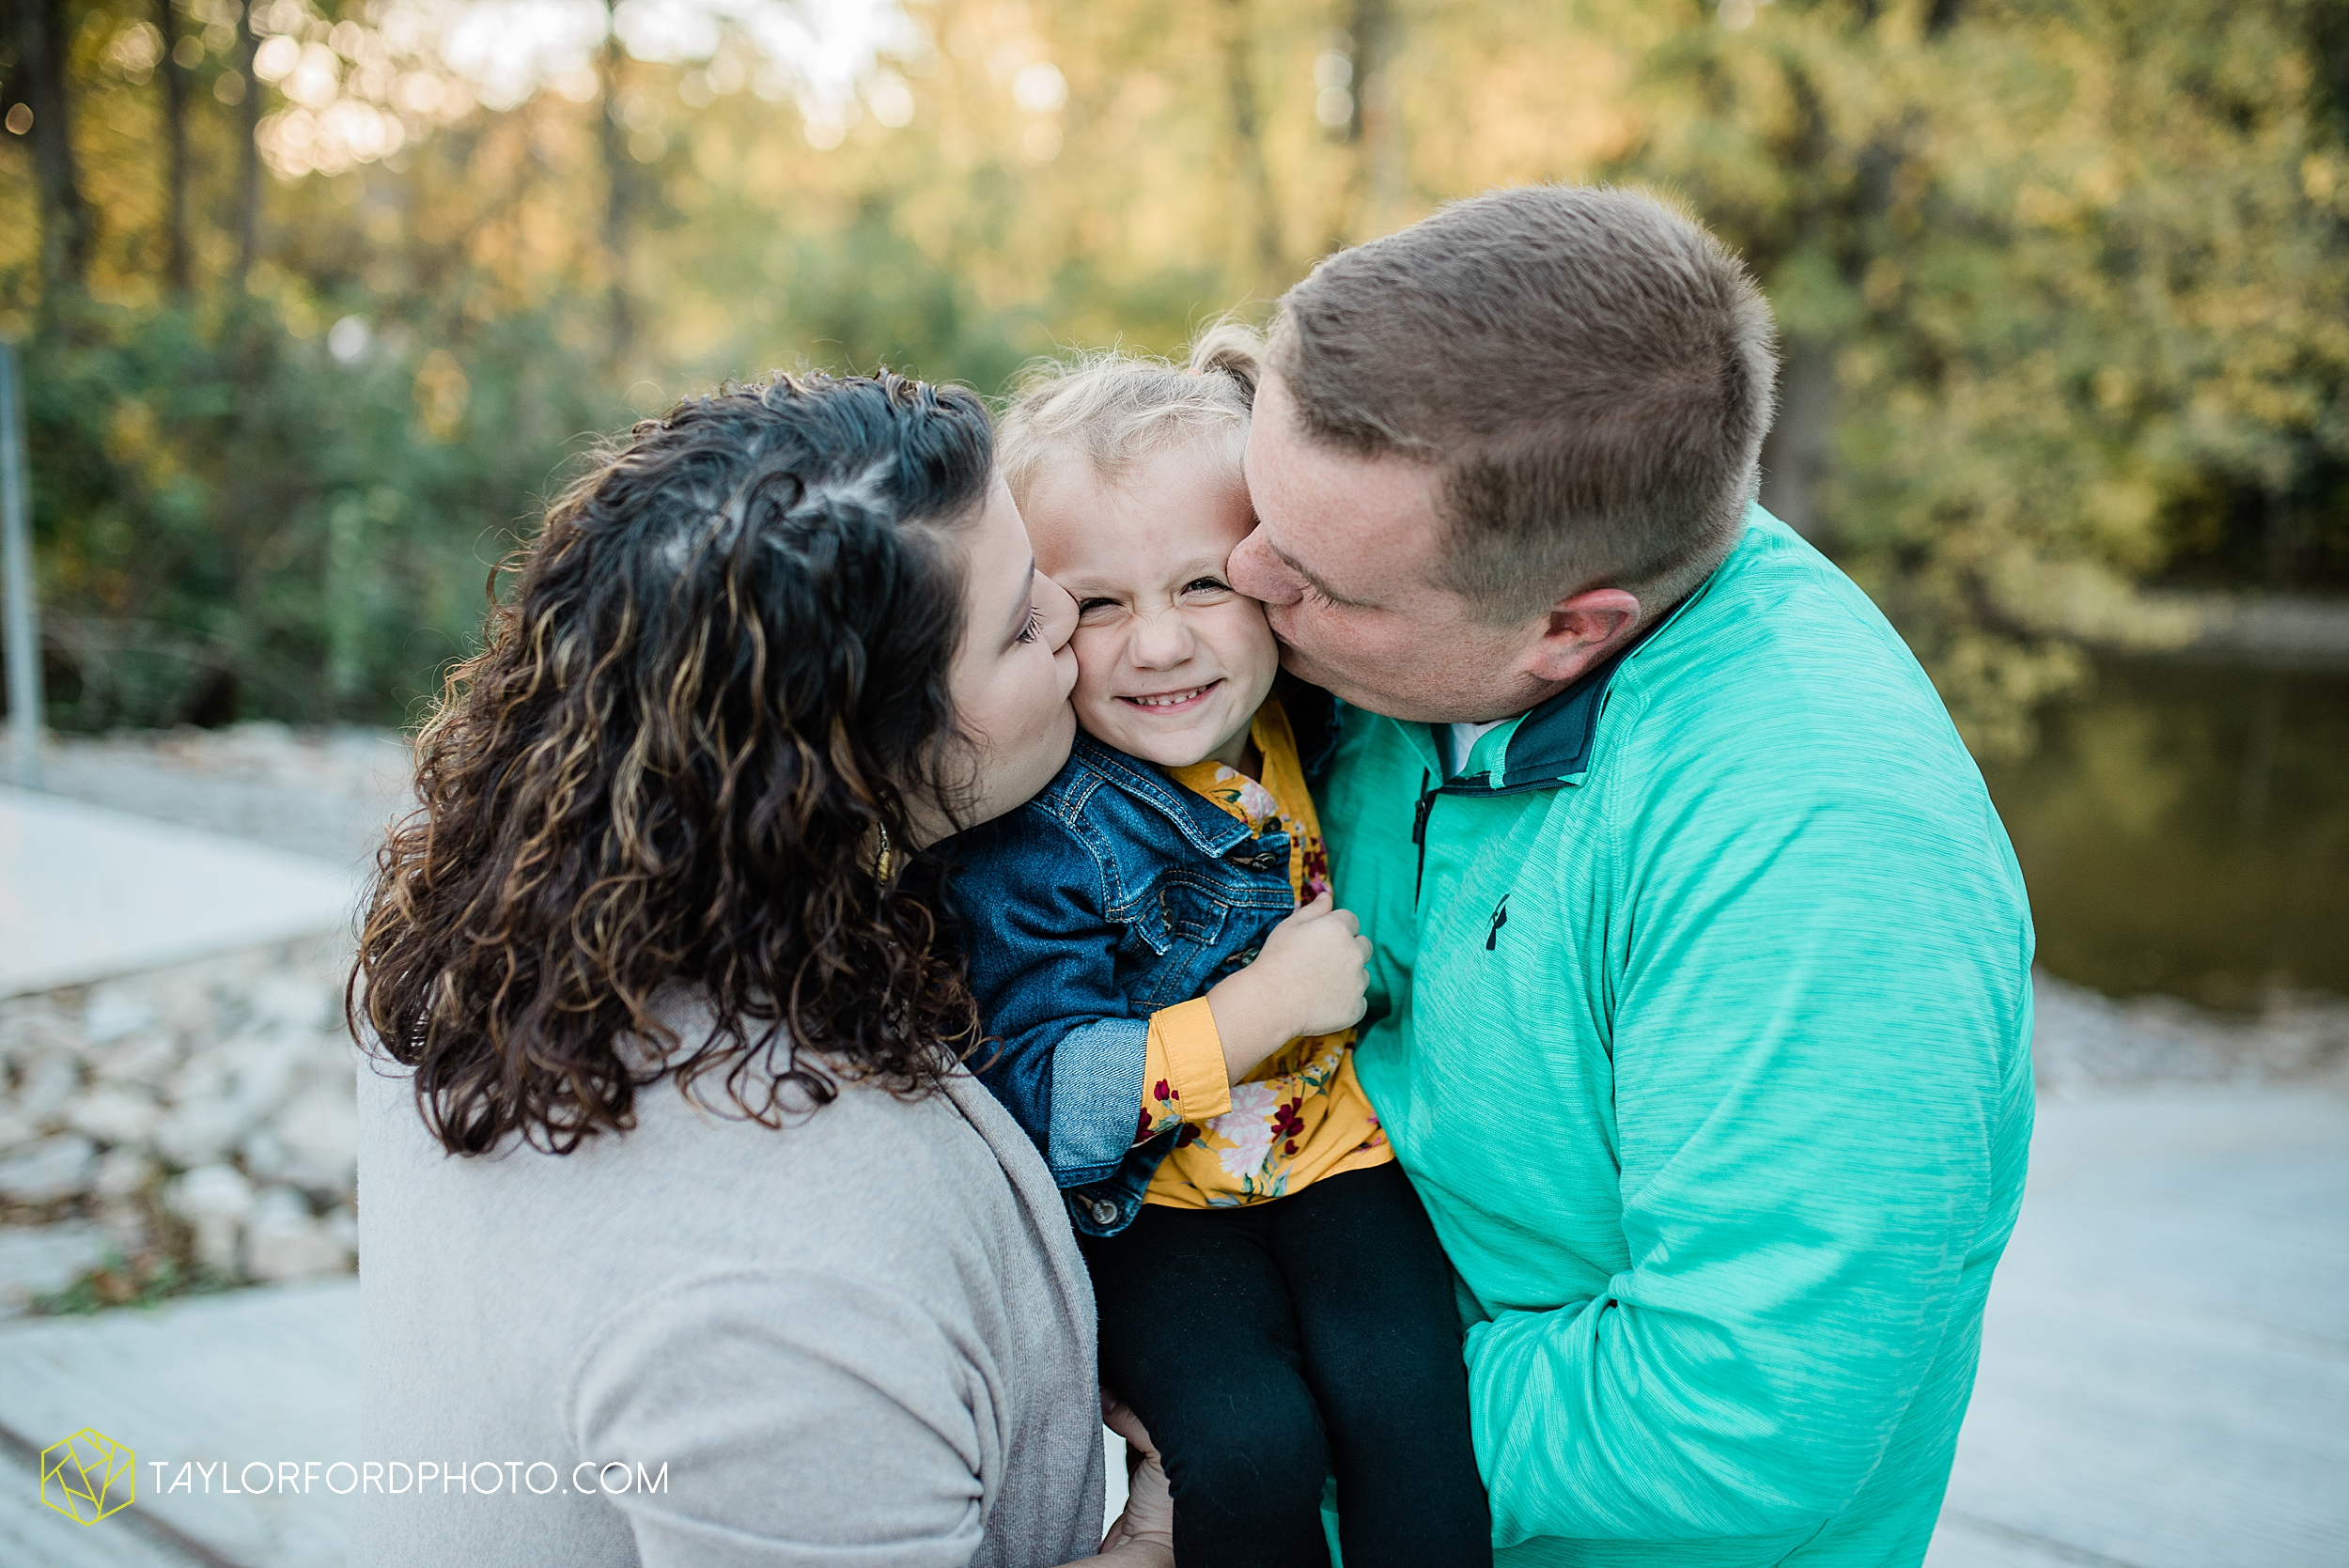 hogan-northeast-fort-wayne-indiana-family-fall-photographer-taylor-ford-photography_1372.jpg